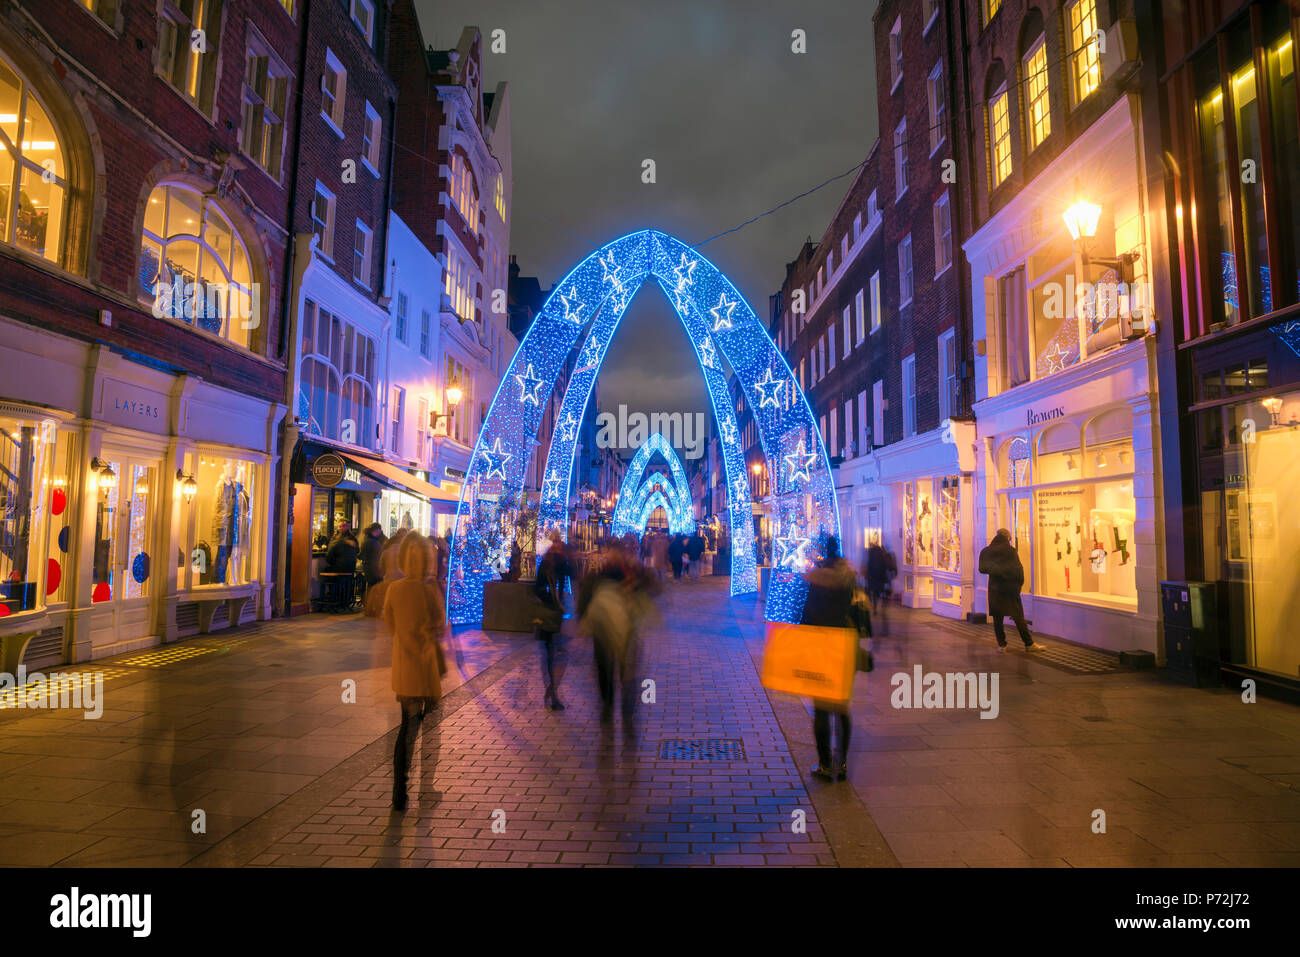 Christmas decorations, South Molton Street, off Oxford Street, West End, London, England, United Kingdom, Europe - Stock Image